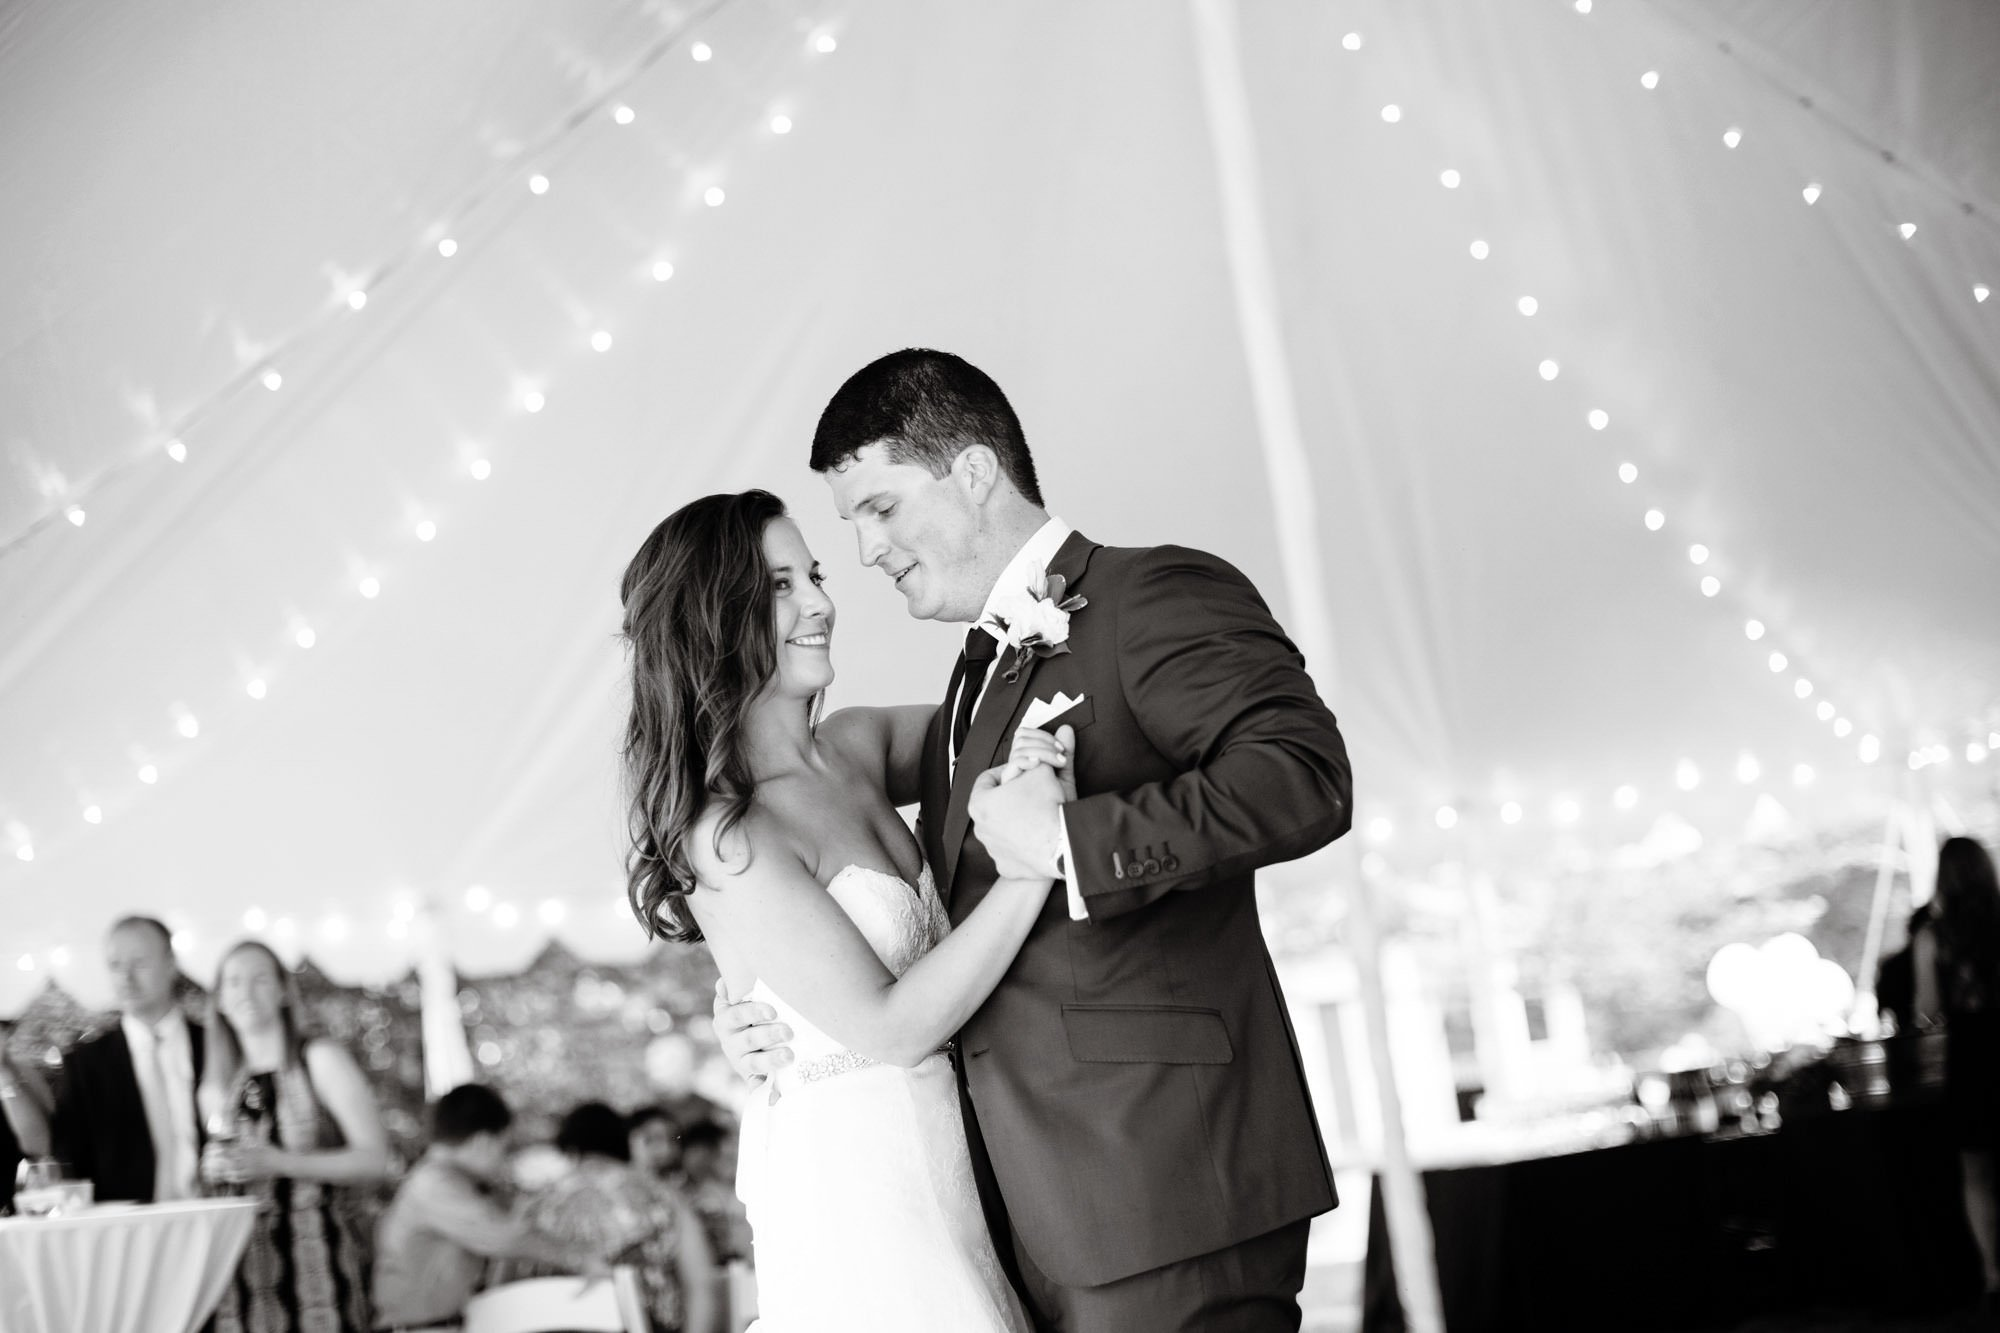 The couple shares their first dance as husband and wife during the tented wedding reception.